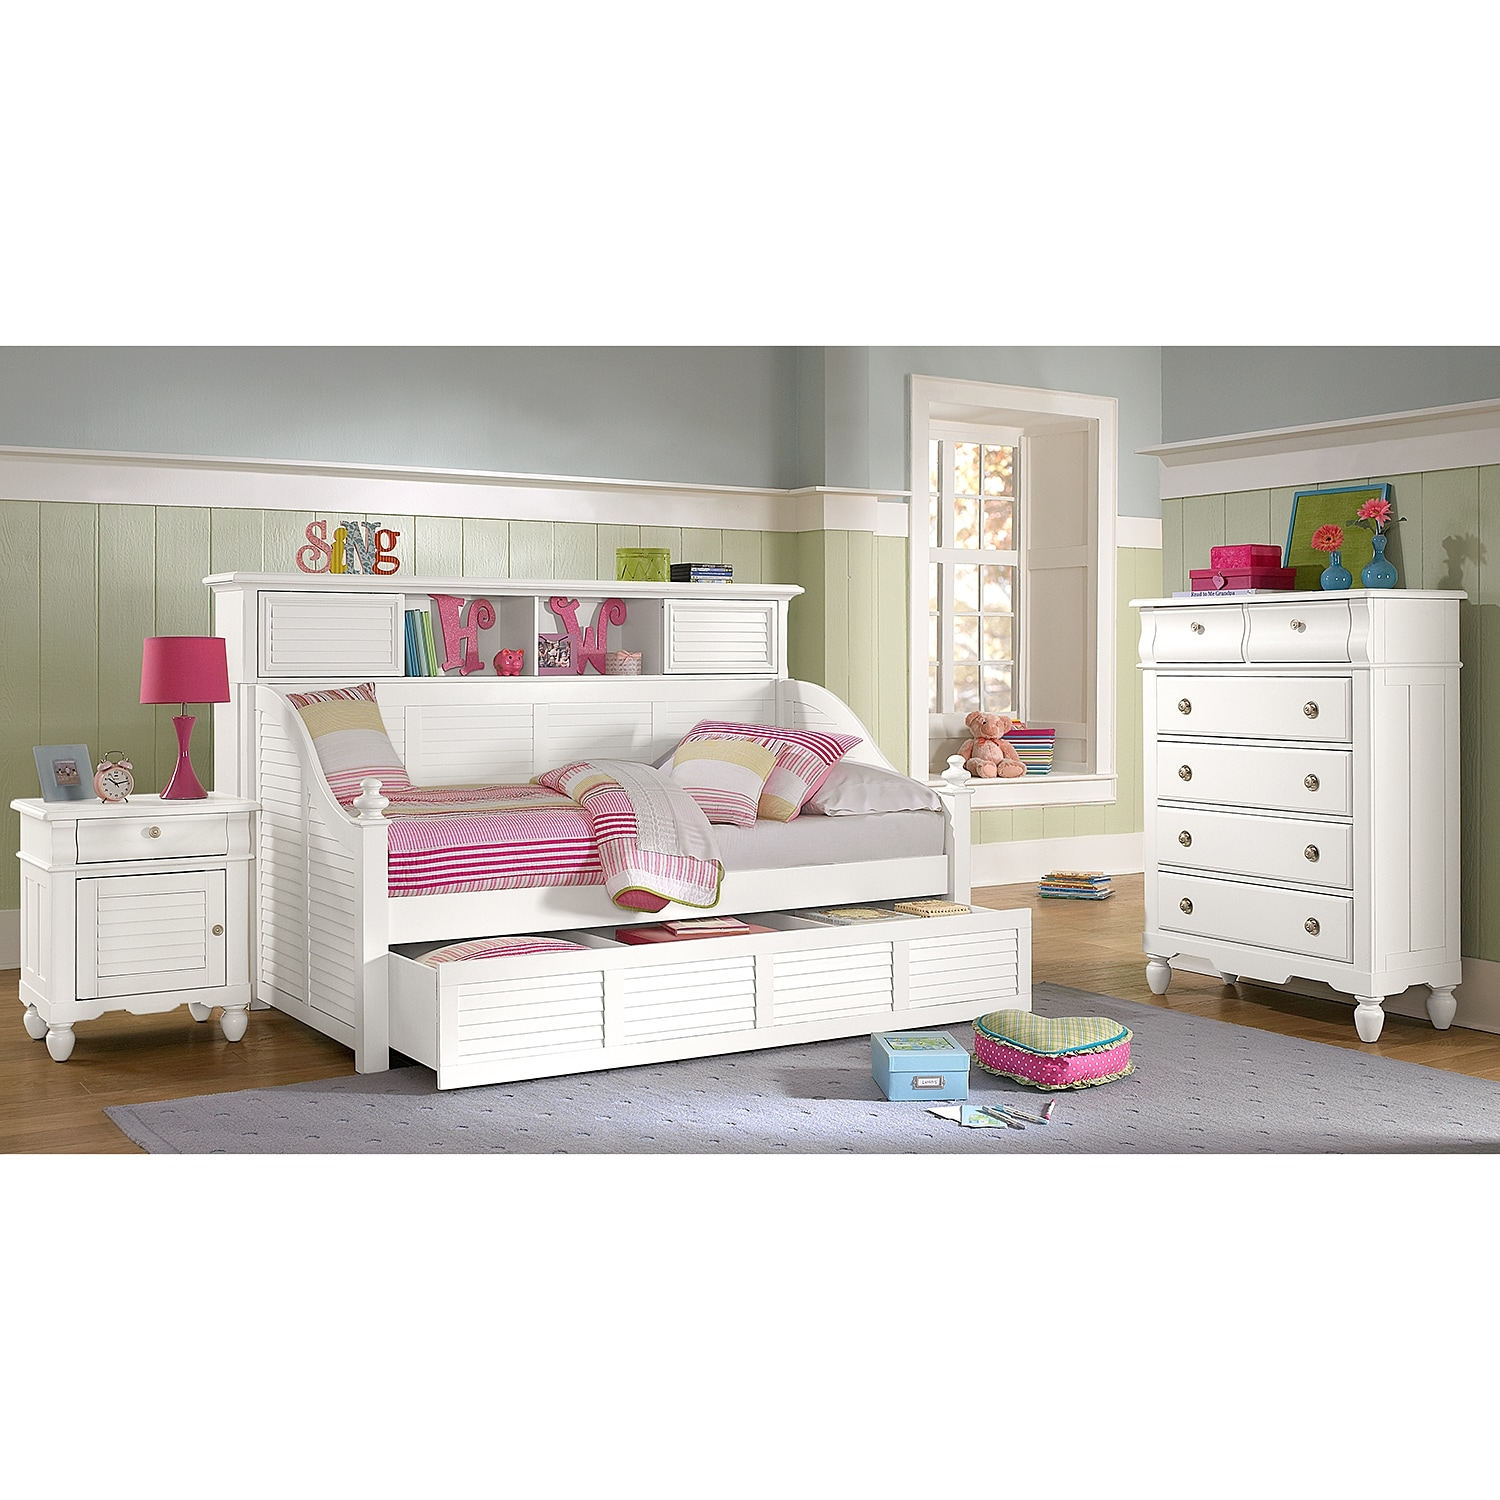 Seaside twin bookcase daybed with trundle white Full size daybed with storage